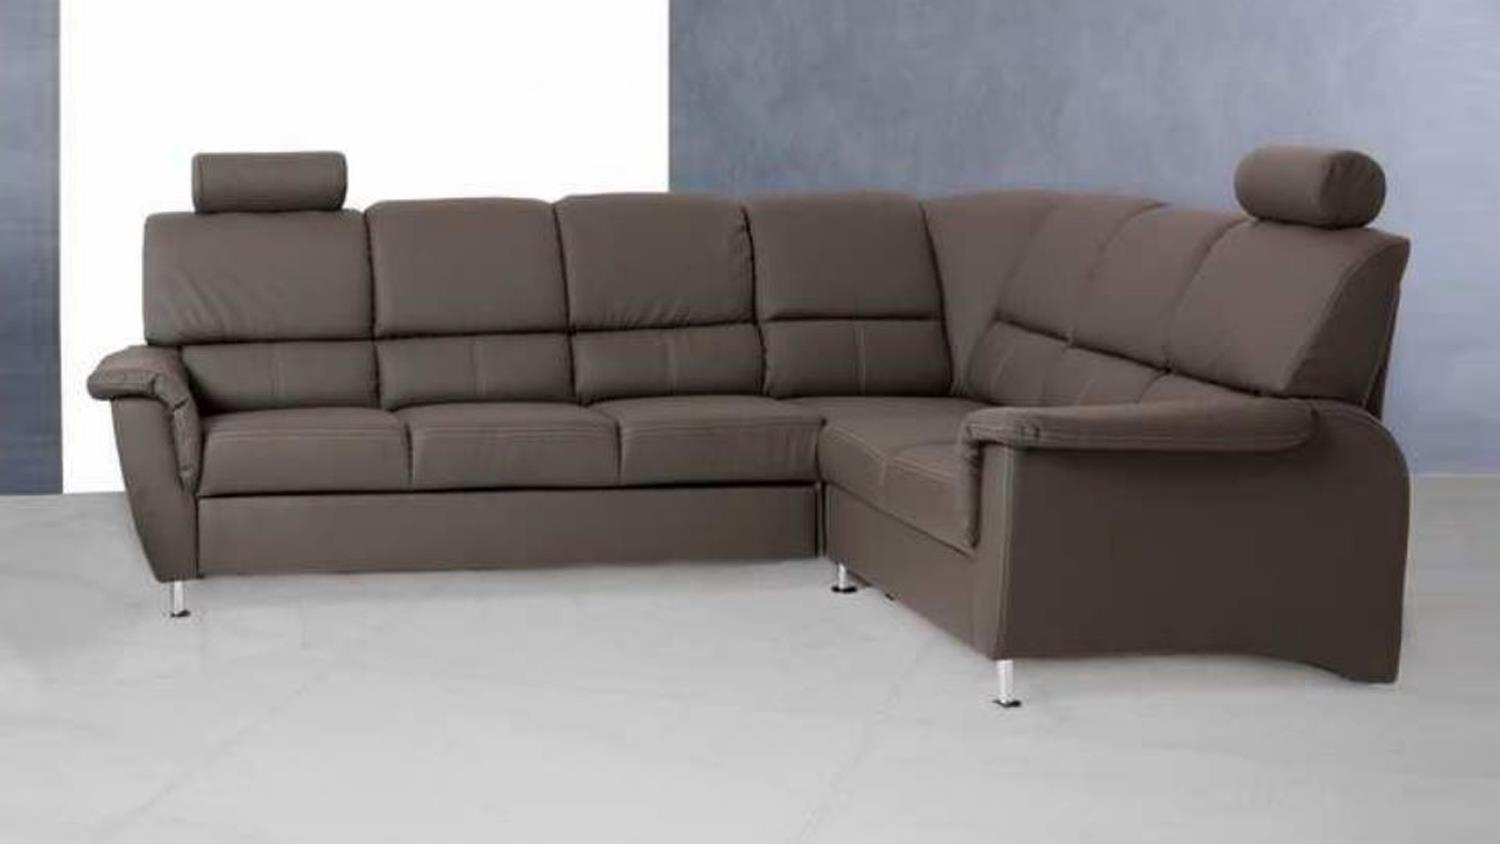 Ecksofa pisa sofa in dunkelgrau mit bettfunktion for Sofa mit bettfunktion